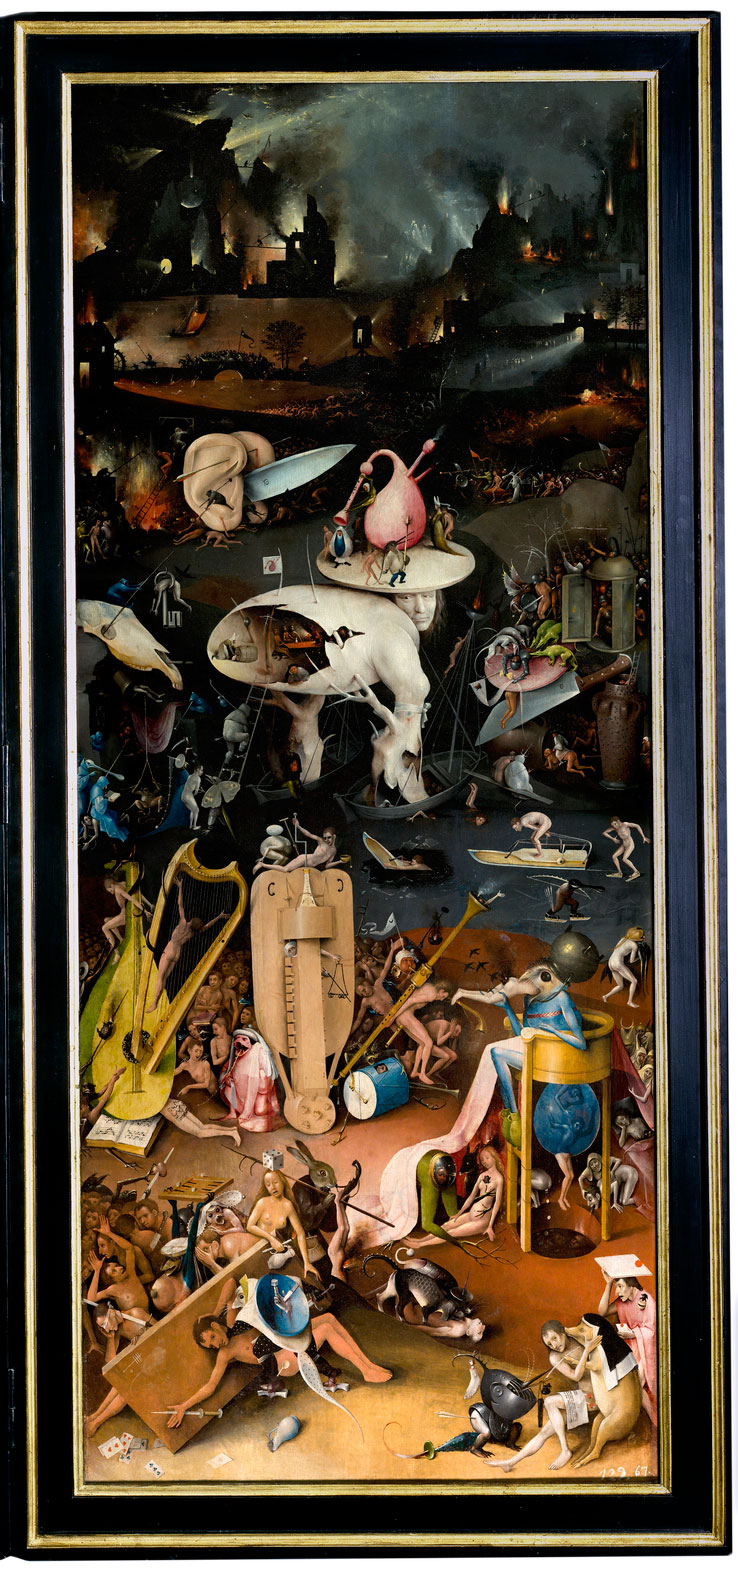 hieronymus bosch   the garden of earthly delights 6 Paradise: A Modern Day Interpretation of the Garden of Earthly Delights